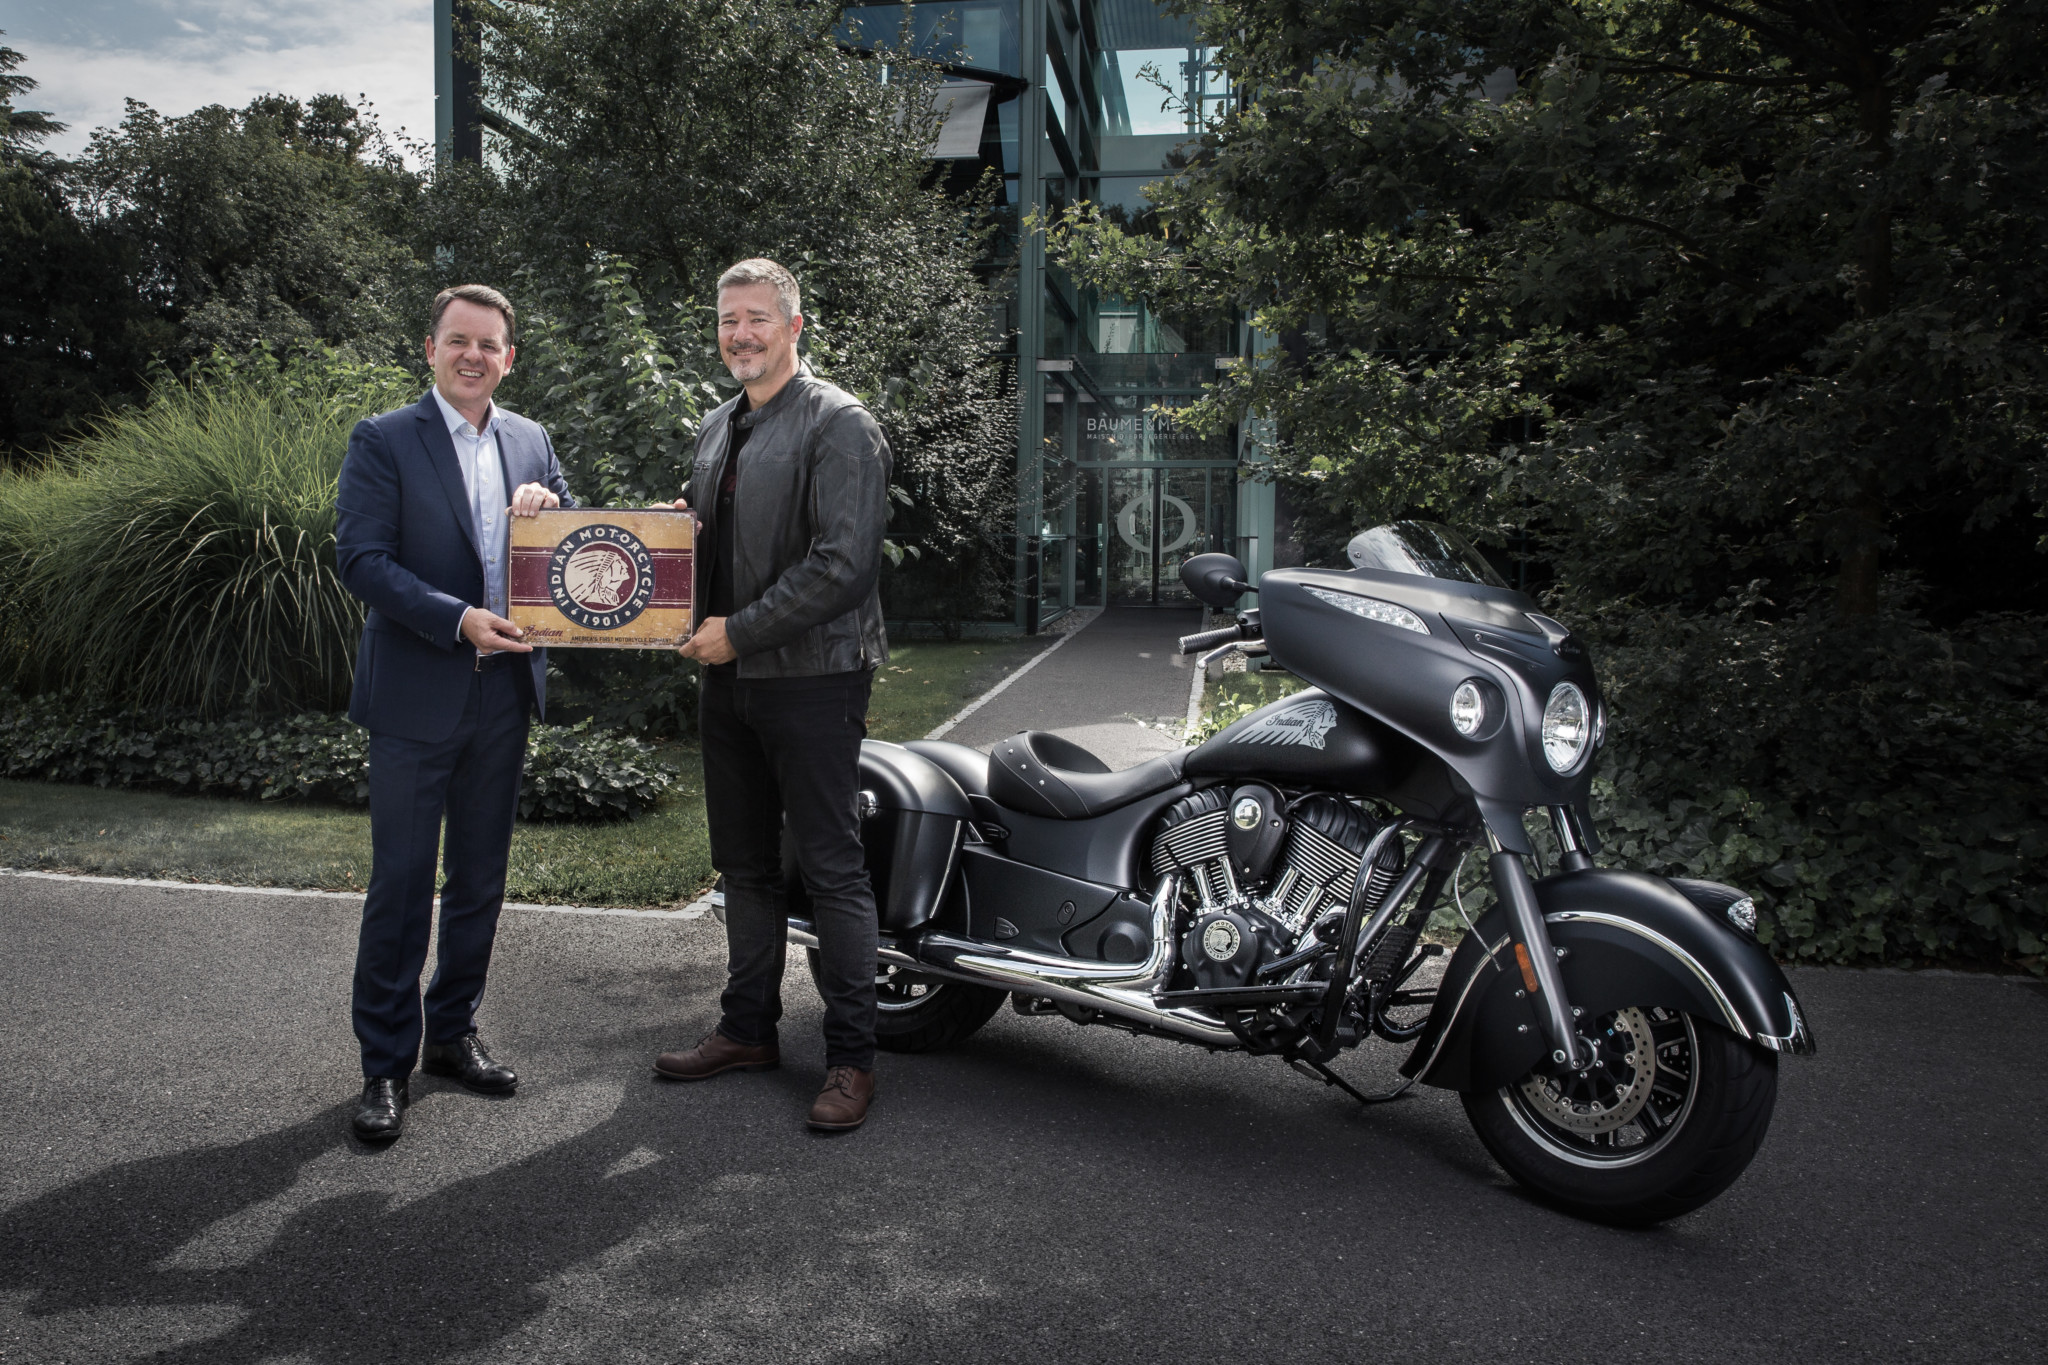 Baume & Mercier to unveil special watches to honour Indian Motorcycle